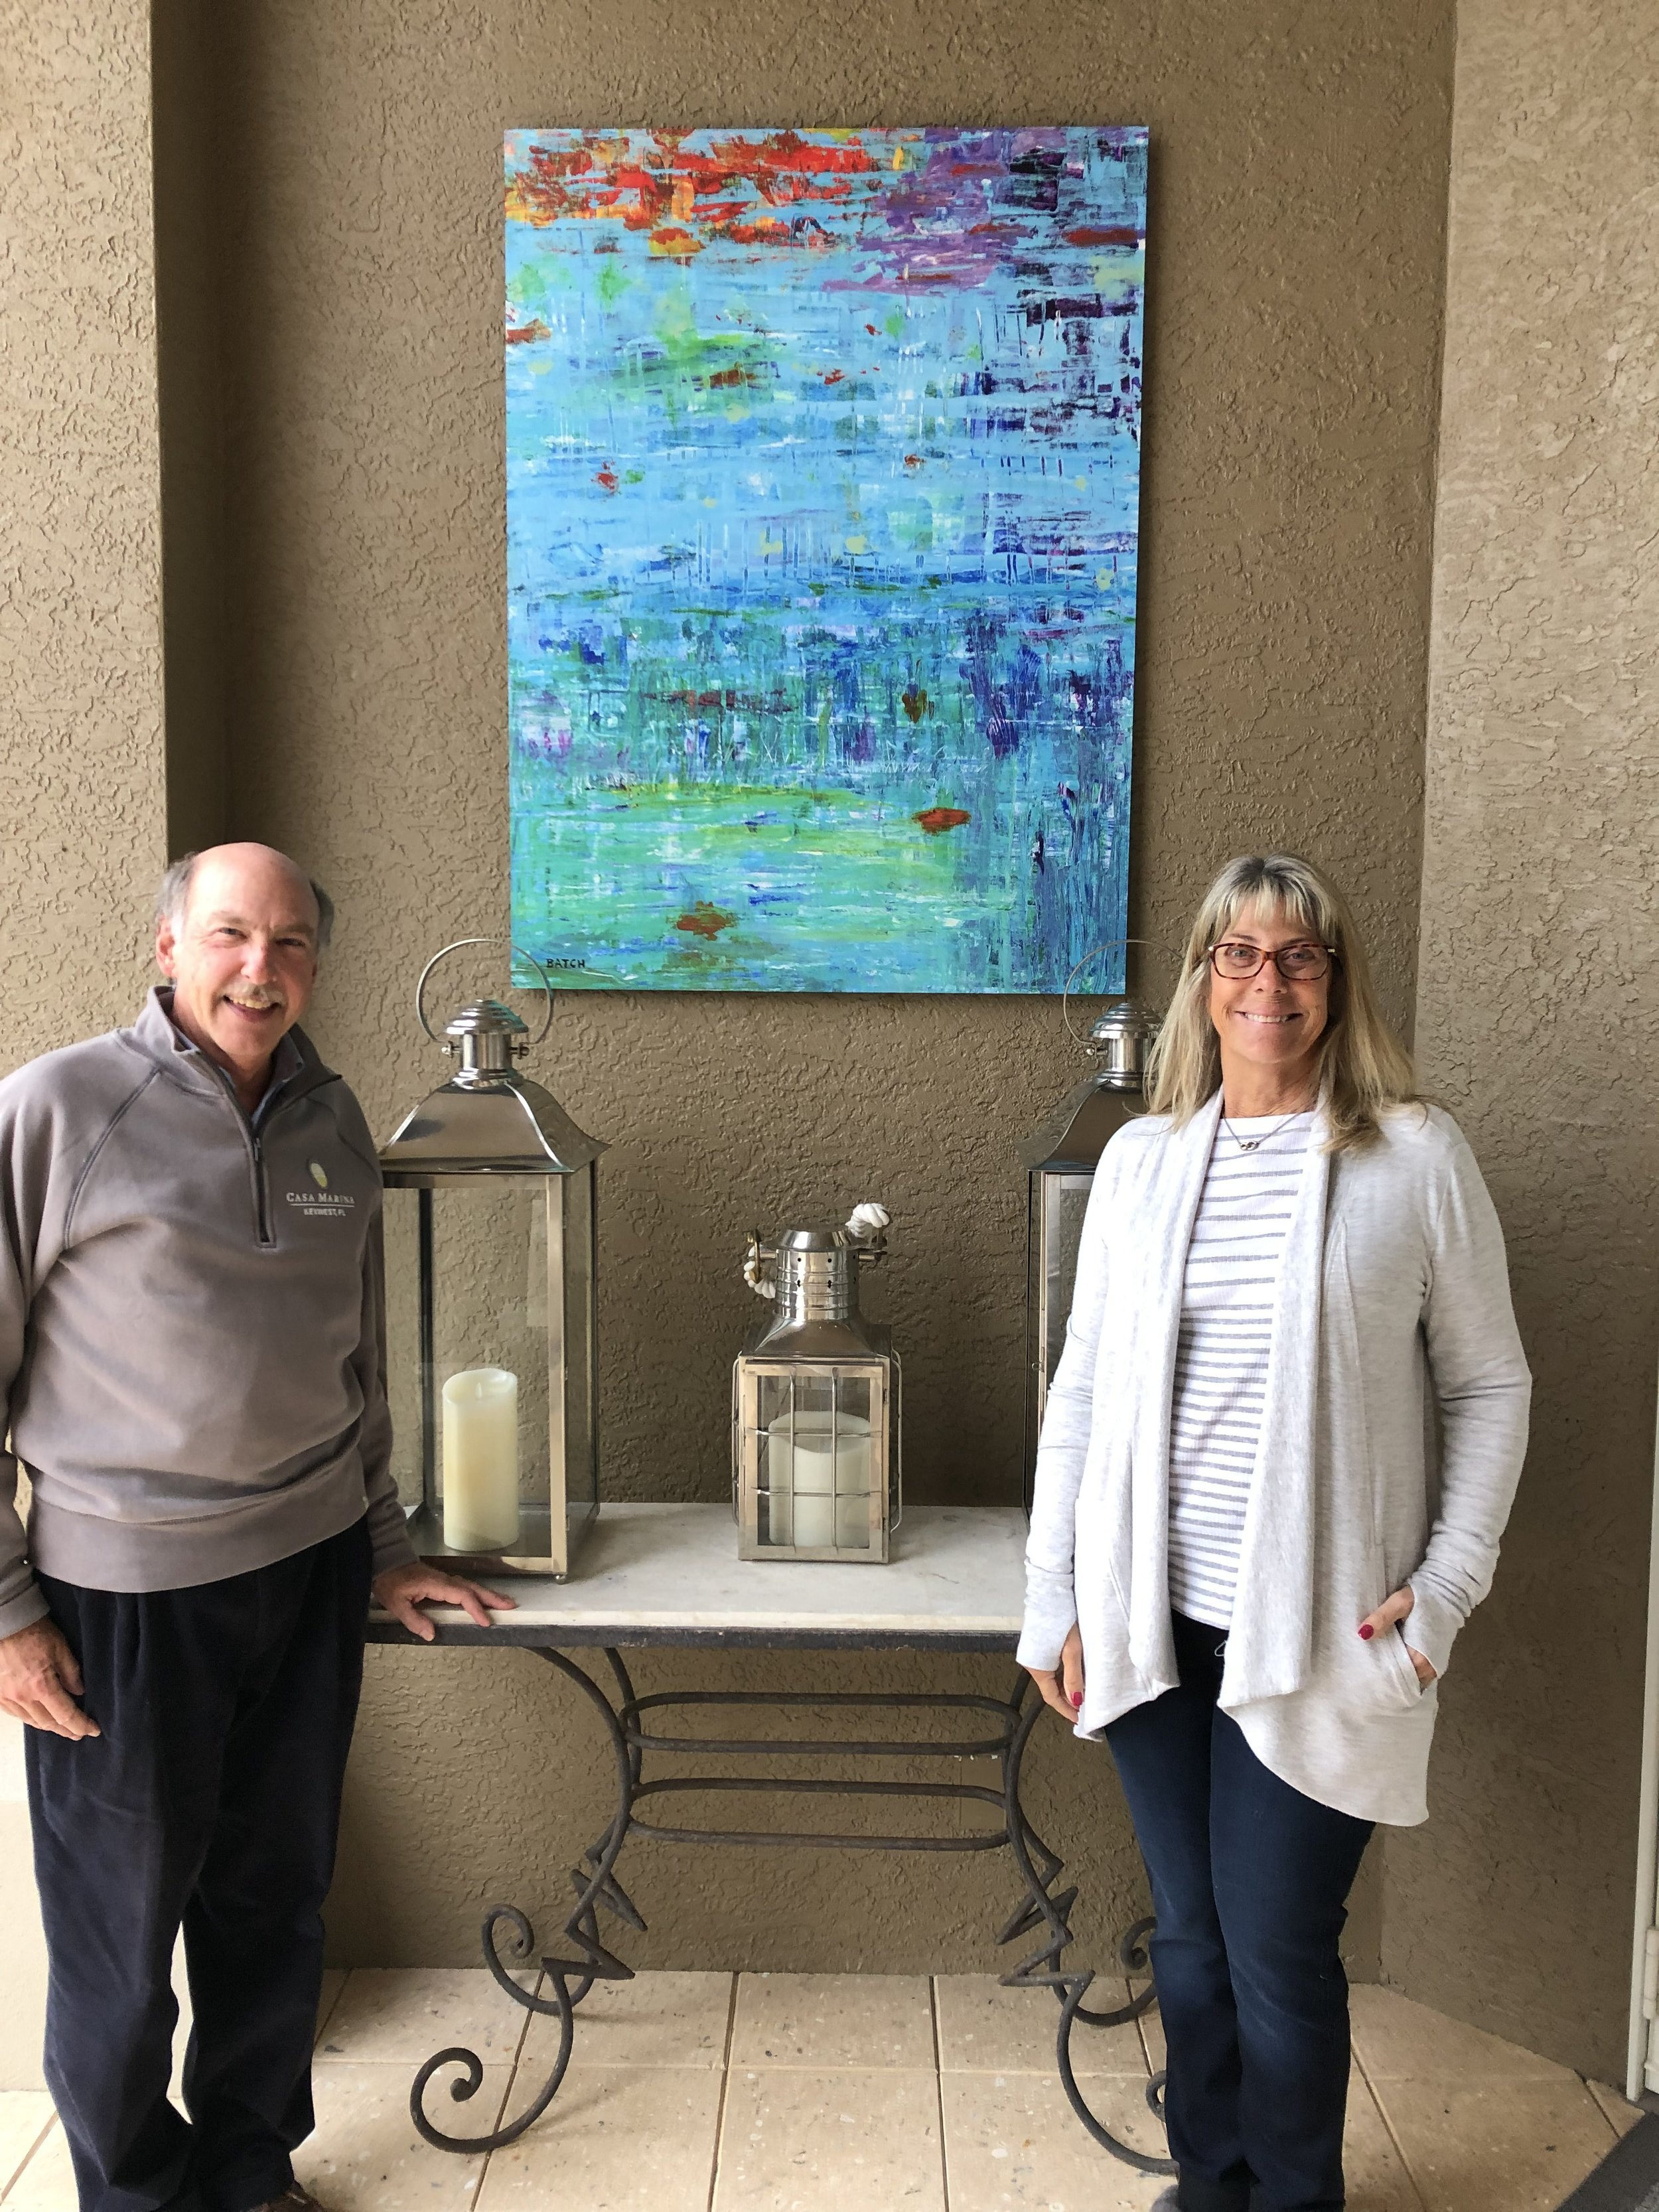 Colette and Bob Levy display the image of Natural Serenity printed on 3'x4' aluminum panel for their beautiful Floridian lanai!